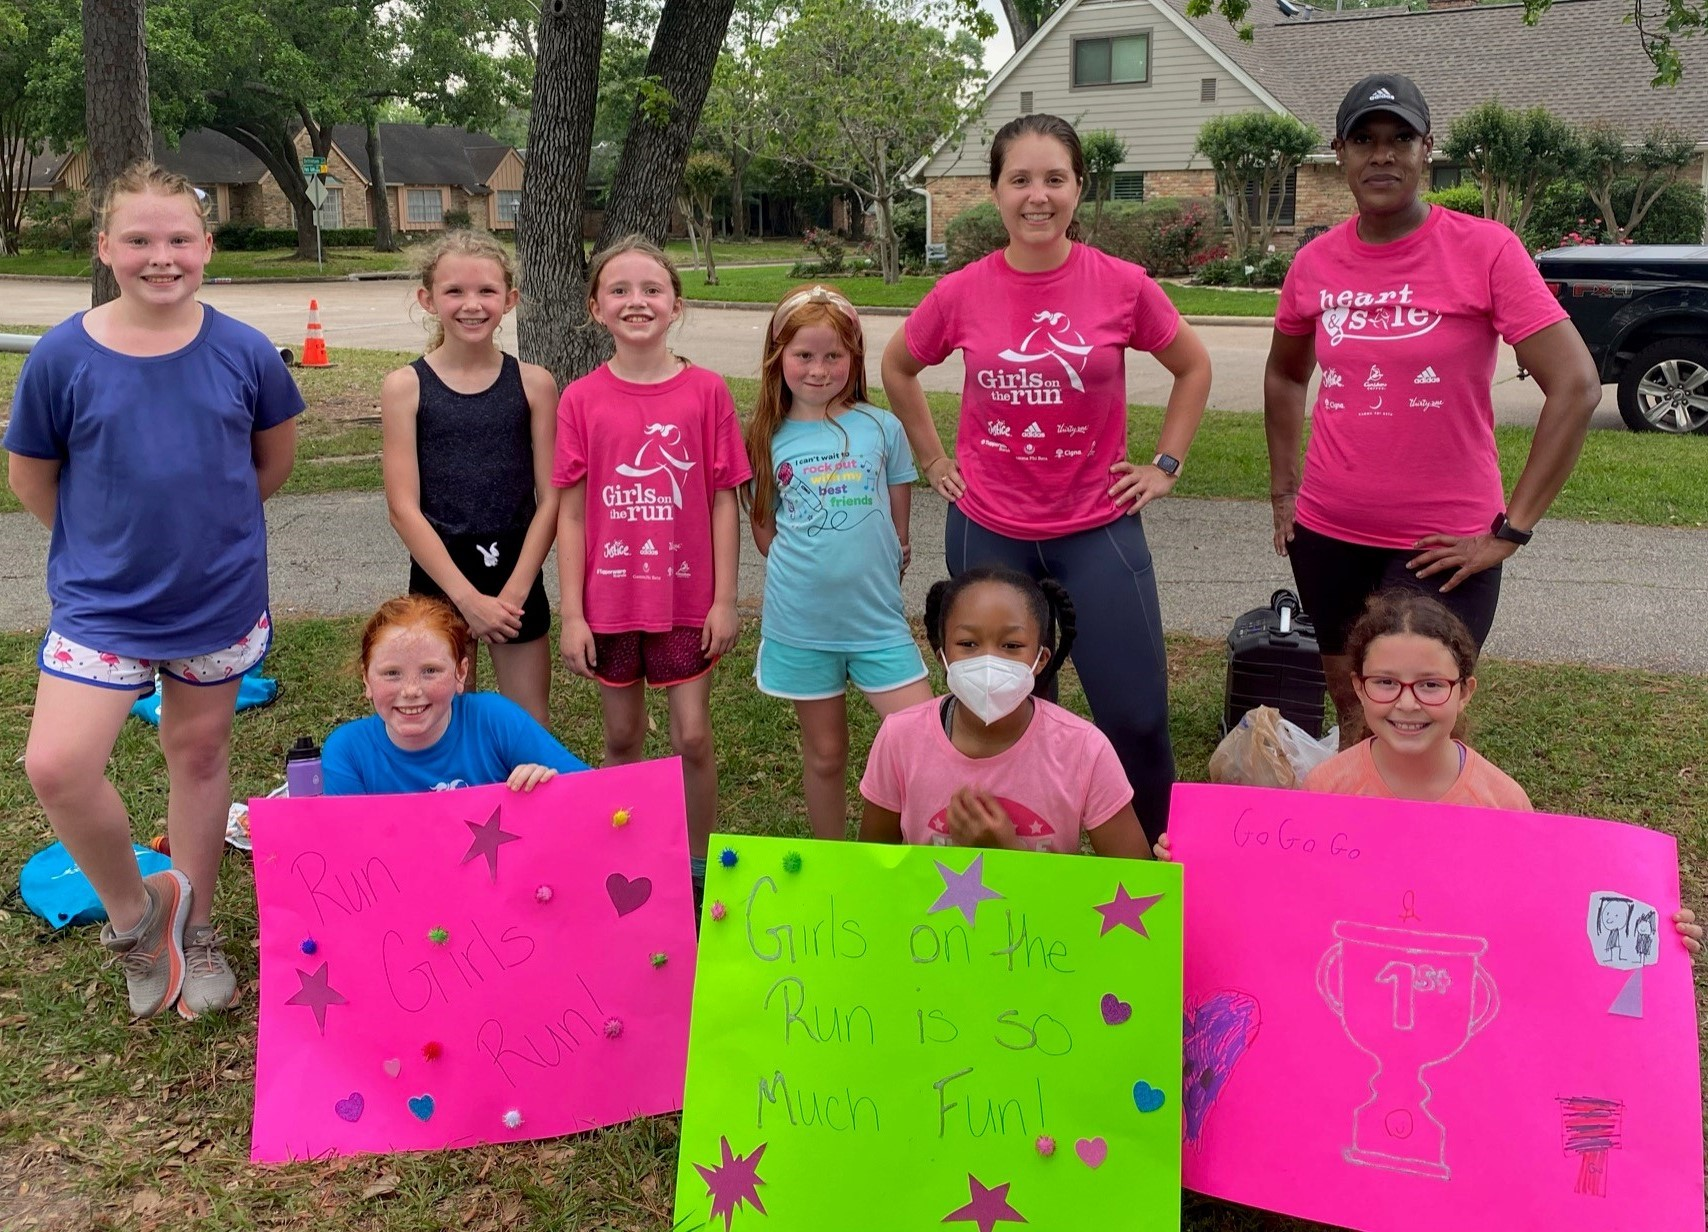 """Girls on the Run coaches and teammates grouped together holding signs with positive affirmations about GOTR. They read: """"Girls on the Run is so much fun!"""" and """"Go, go, go!"""" Great reminders that no matter our pathway, we can support each other."""